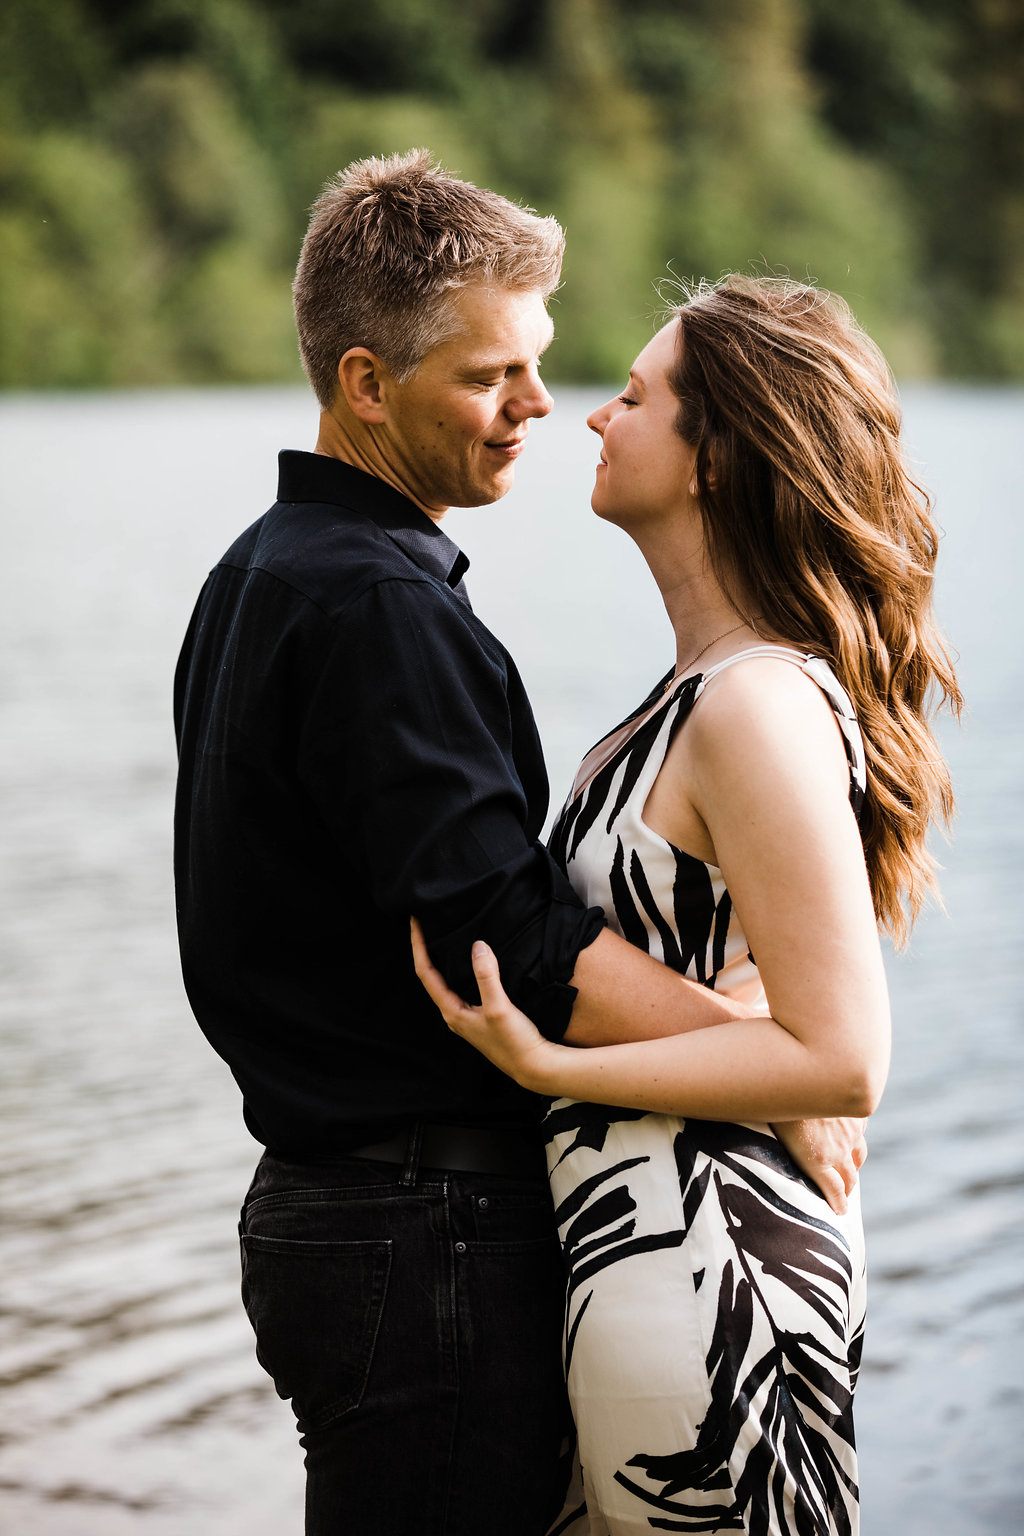 Eivind+Elyse_Engagement_Rattlesnake_lake_ridge_Seattle_Photographer_Adina_Preston_Weddings_40.JPG